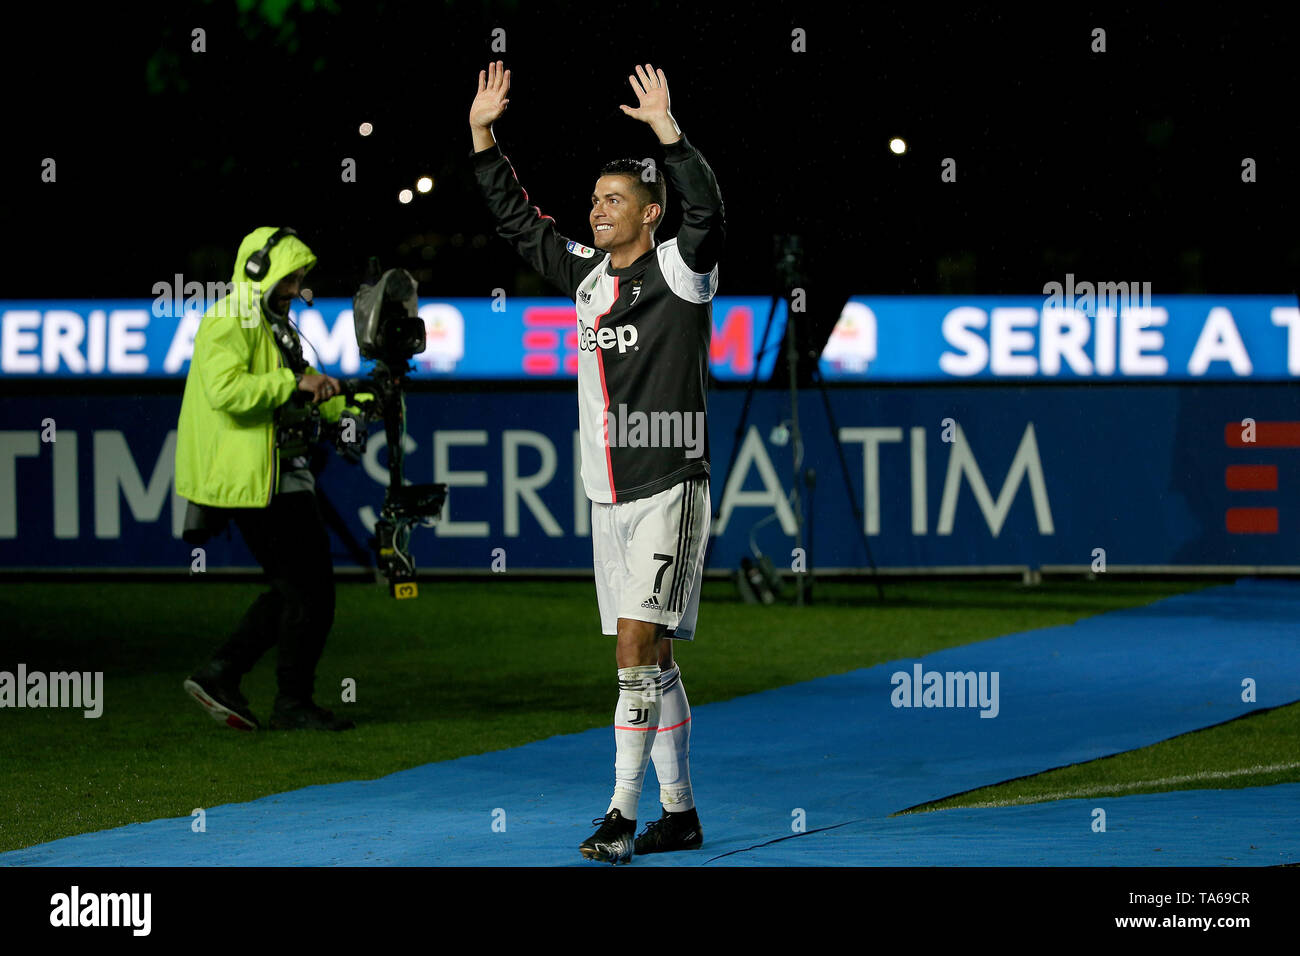 Turin Italy 19th May 2019 Soccer Serie A Tim Championship 2018 19 Festa Scudetto Juventus Vs Atalanta 1 1 In The Photo Cr7 Ronaldo Credit Independent Photo Agency Alamy Live News Stock Photo Alamy